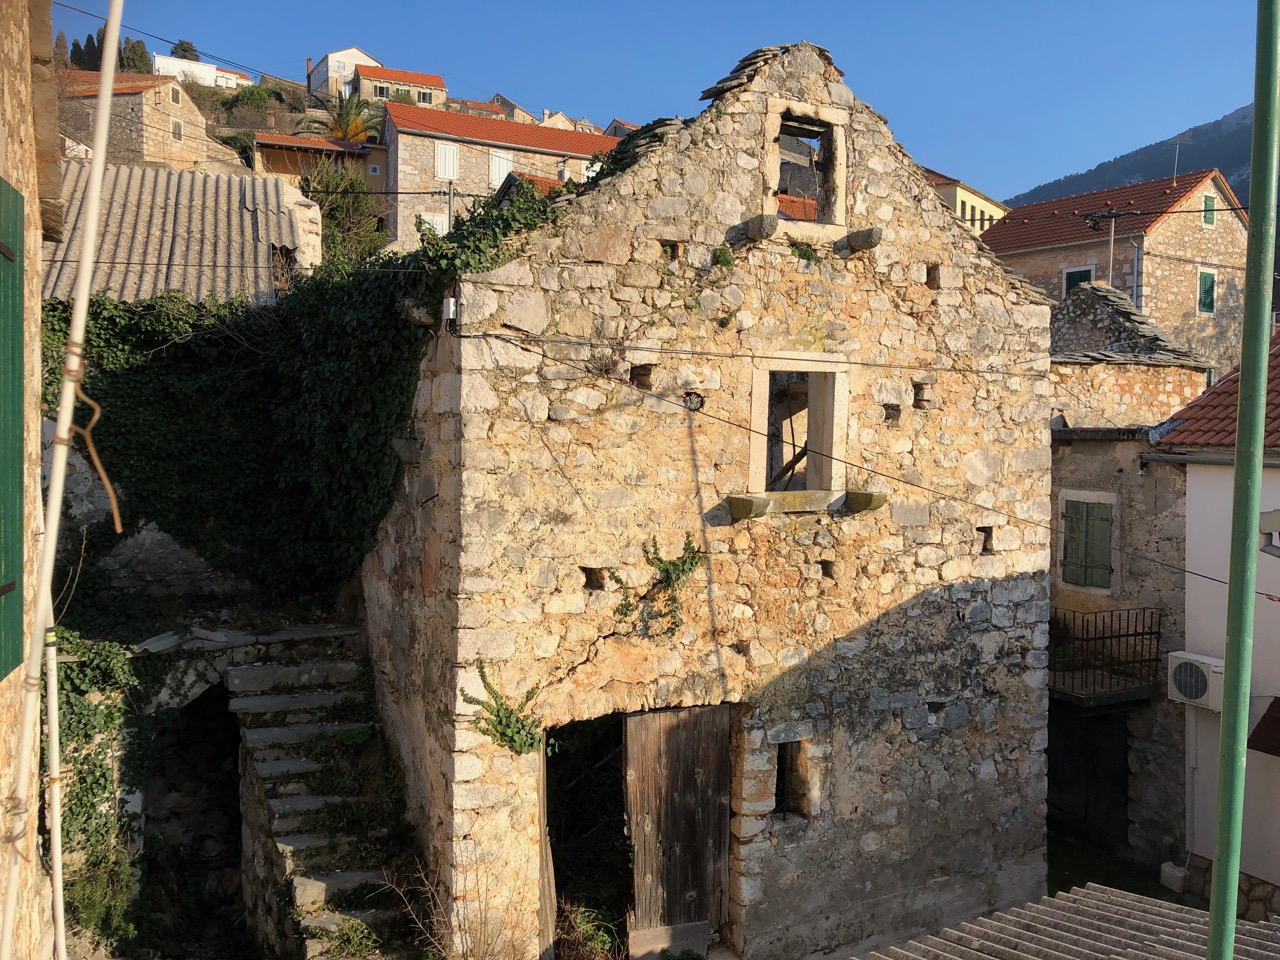 A traditional old stone house for sale on Hvar island requiring extensive renovation